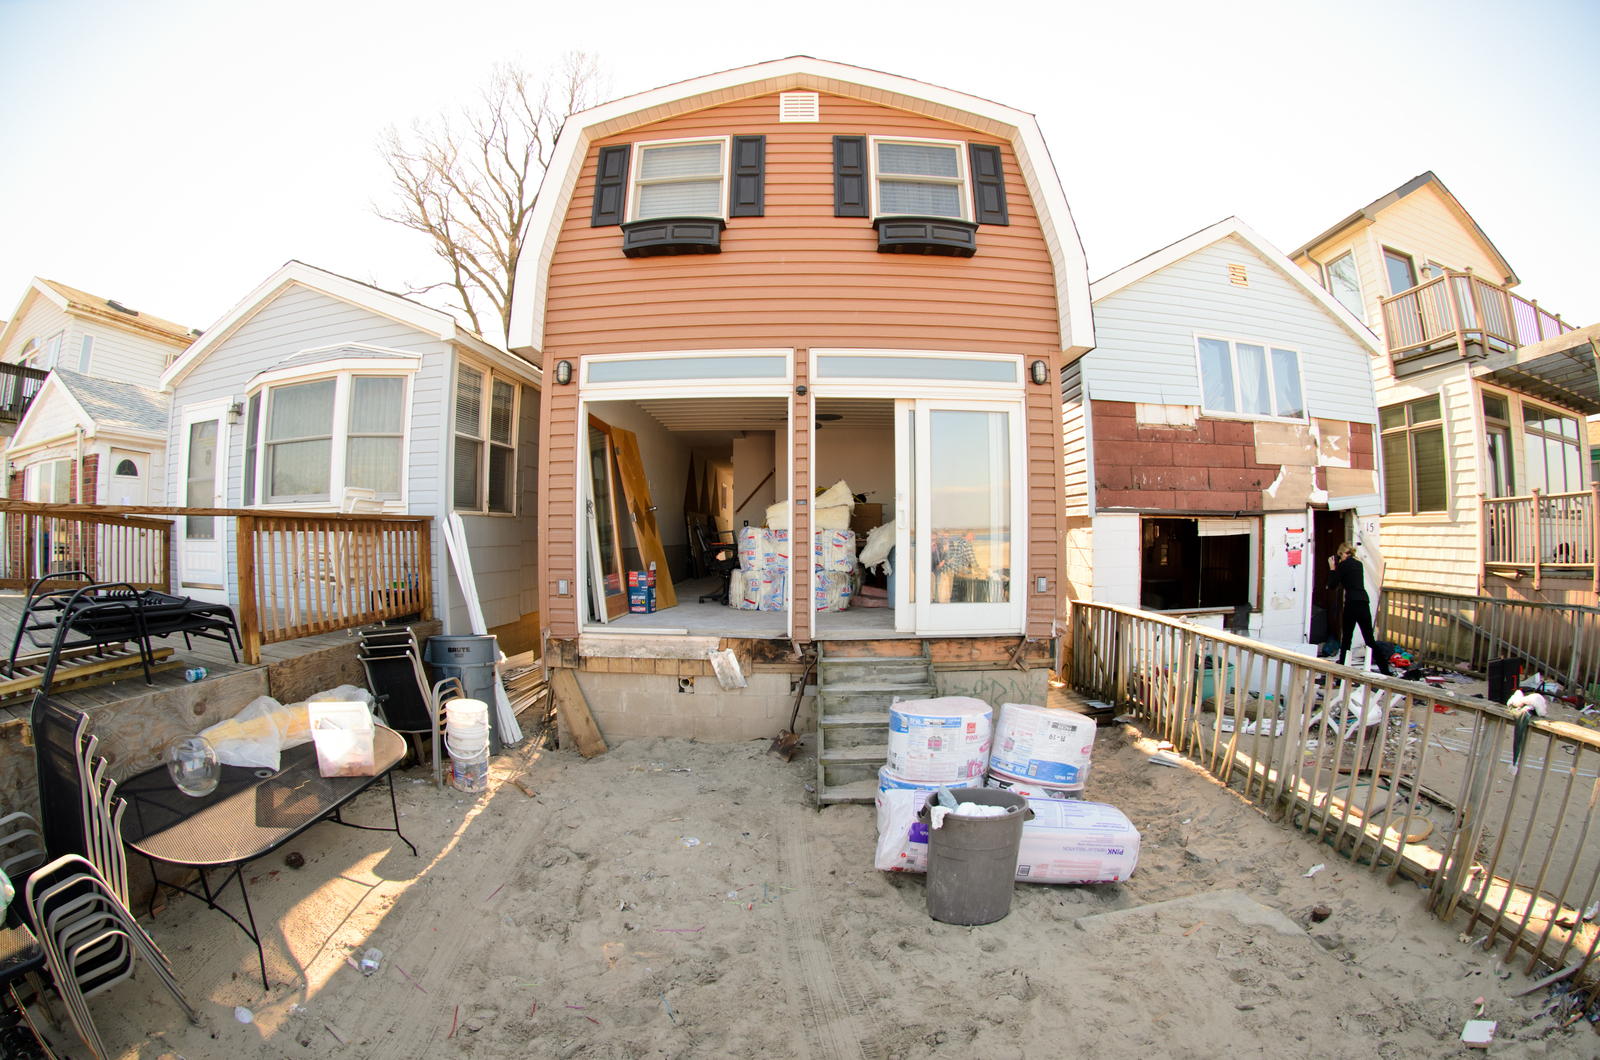 Far Rockaway, N.Y., Dec. 13, 2012 -- FEMA visits with Chief Richard Colleran of Roxbury Volunteer Emergency Services, who's fire house is providing support and food services to local residents of the Far Rockaways and Breezy Point. Andre R. Aragon/FEMA